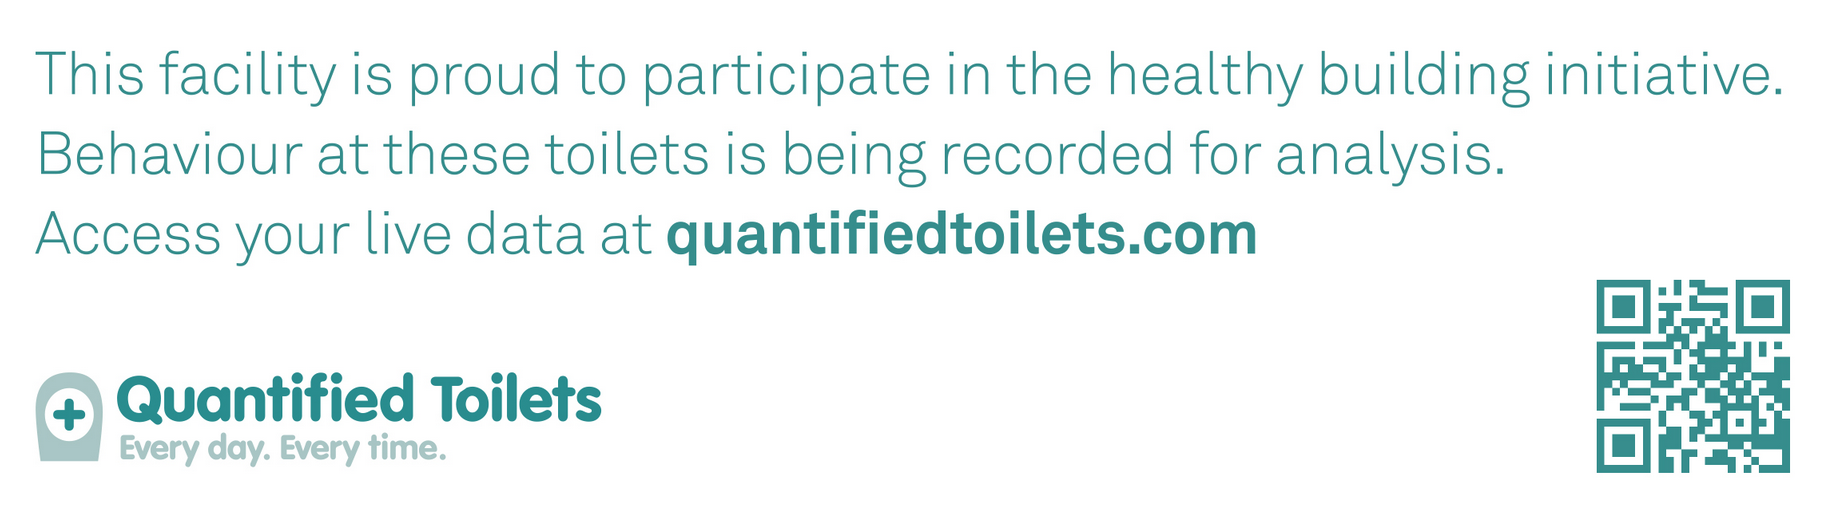 Quantified Toilets sticker